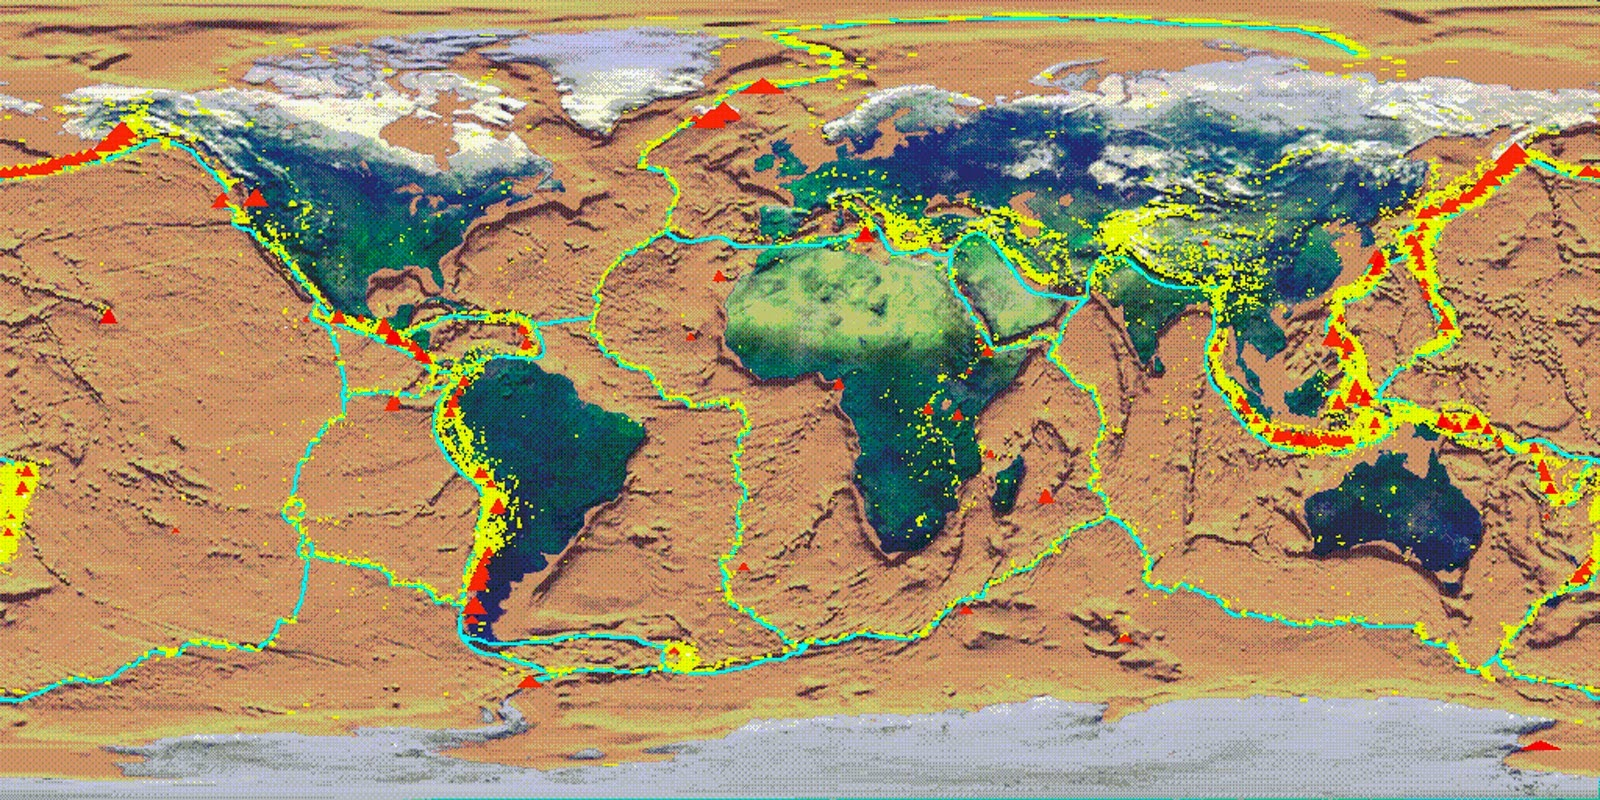 Geologists solve tectonic plate mystery with half a tonne of explosives